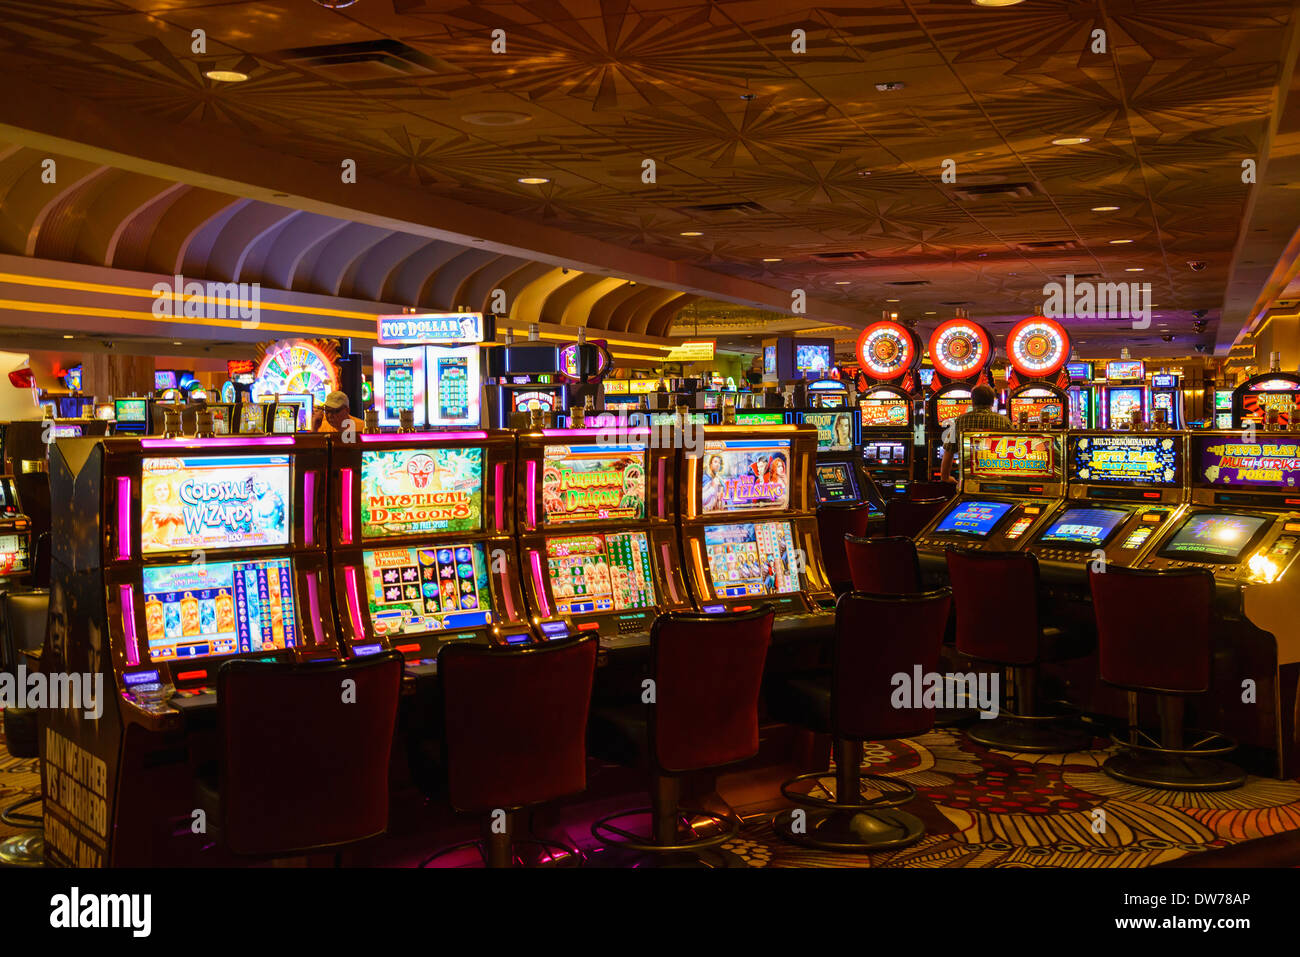 Mgm grand casino images gambling junket atlanta